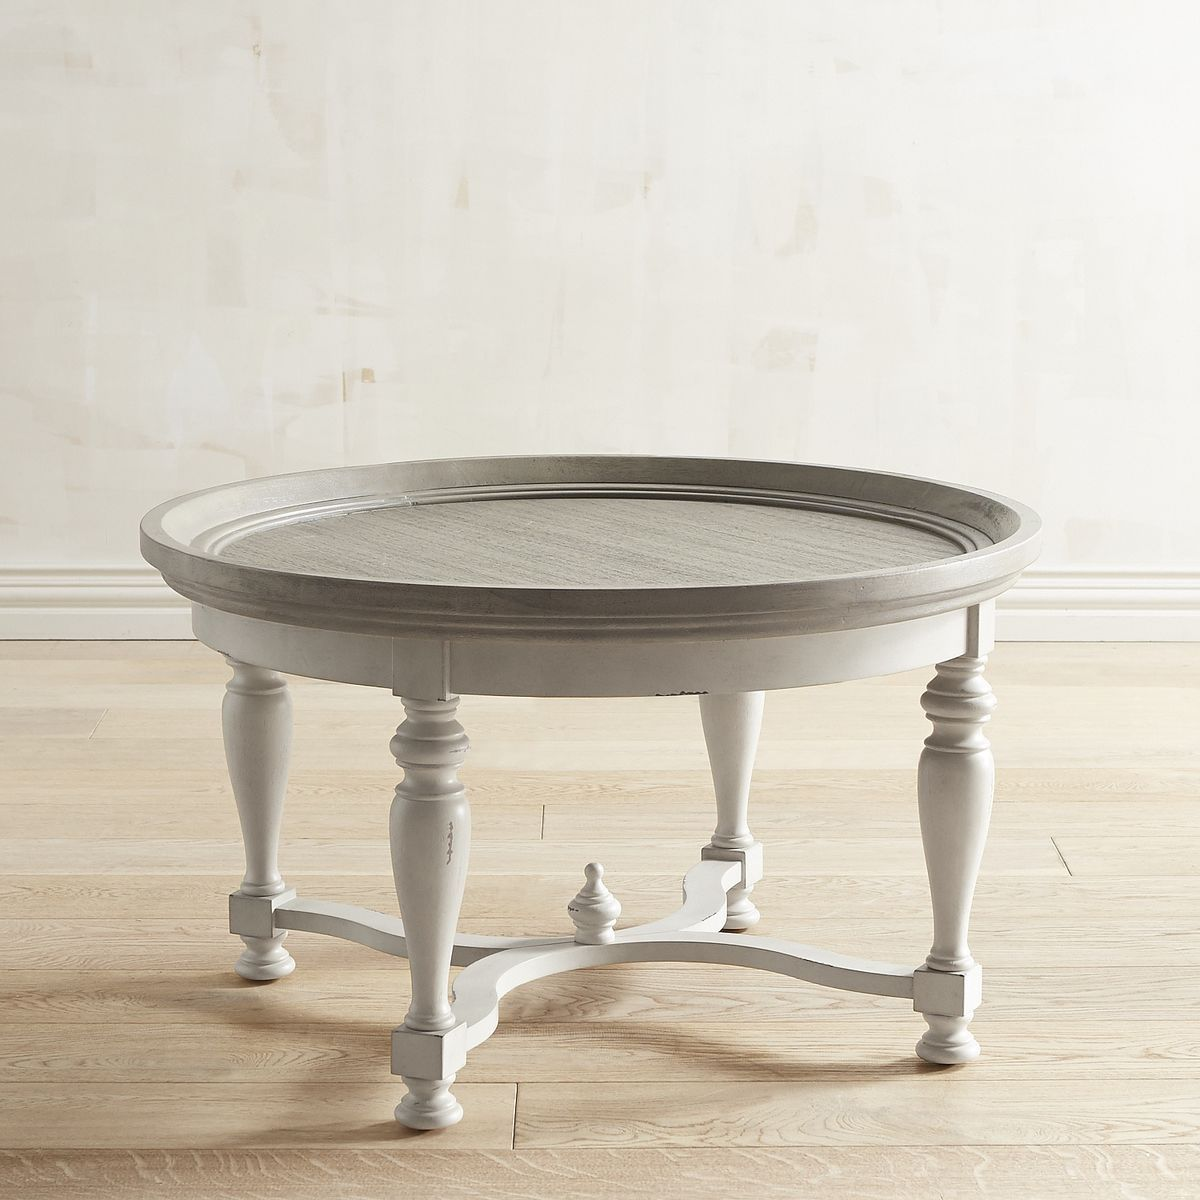 Amelia Shadow Gray Round Coffee Table Round Coffee Table Round